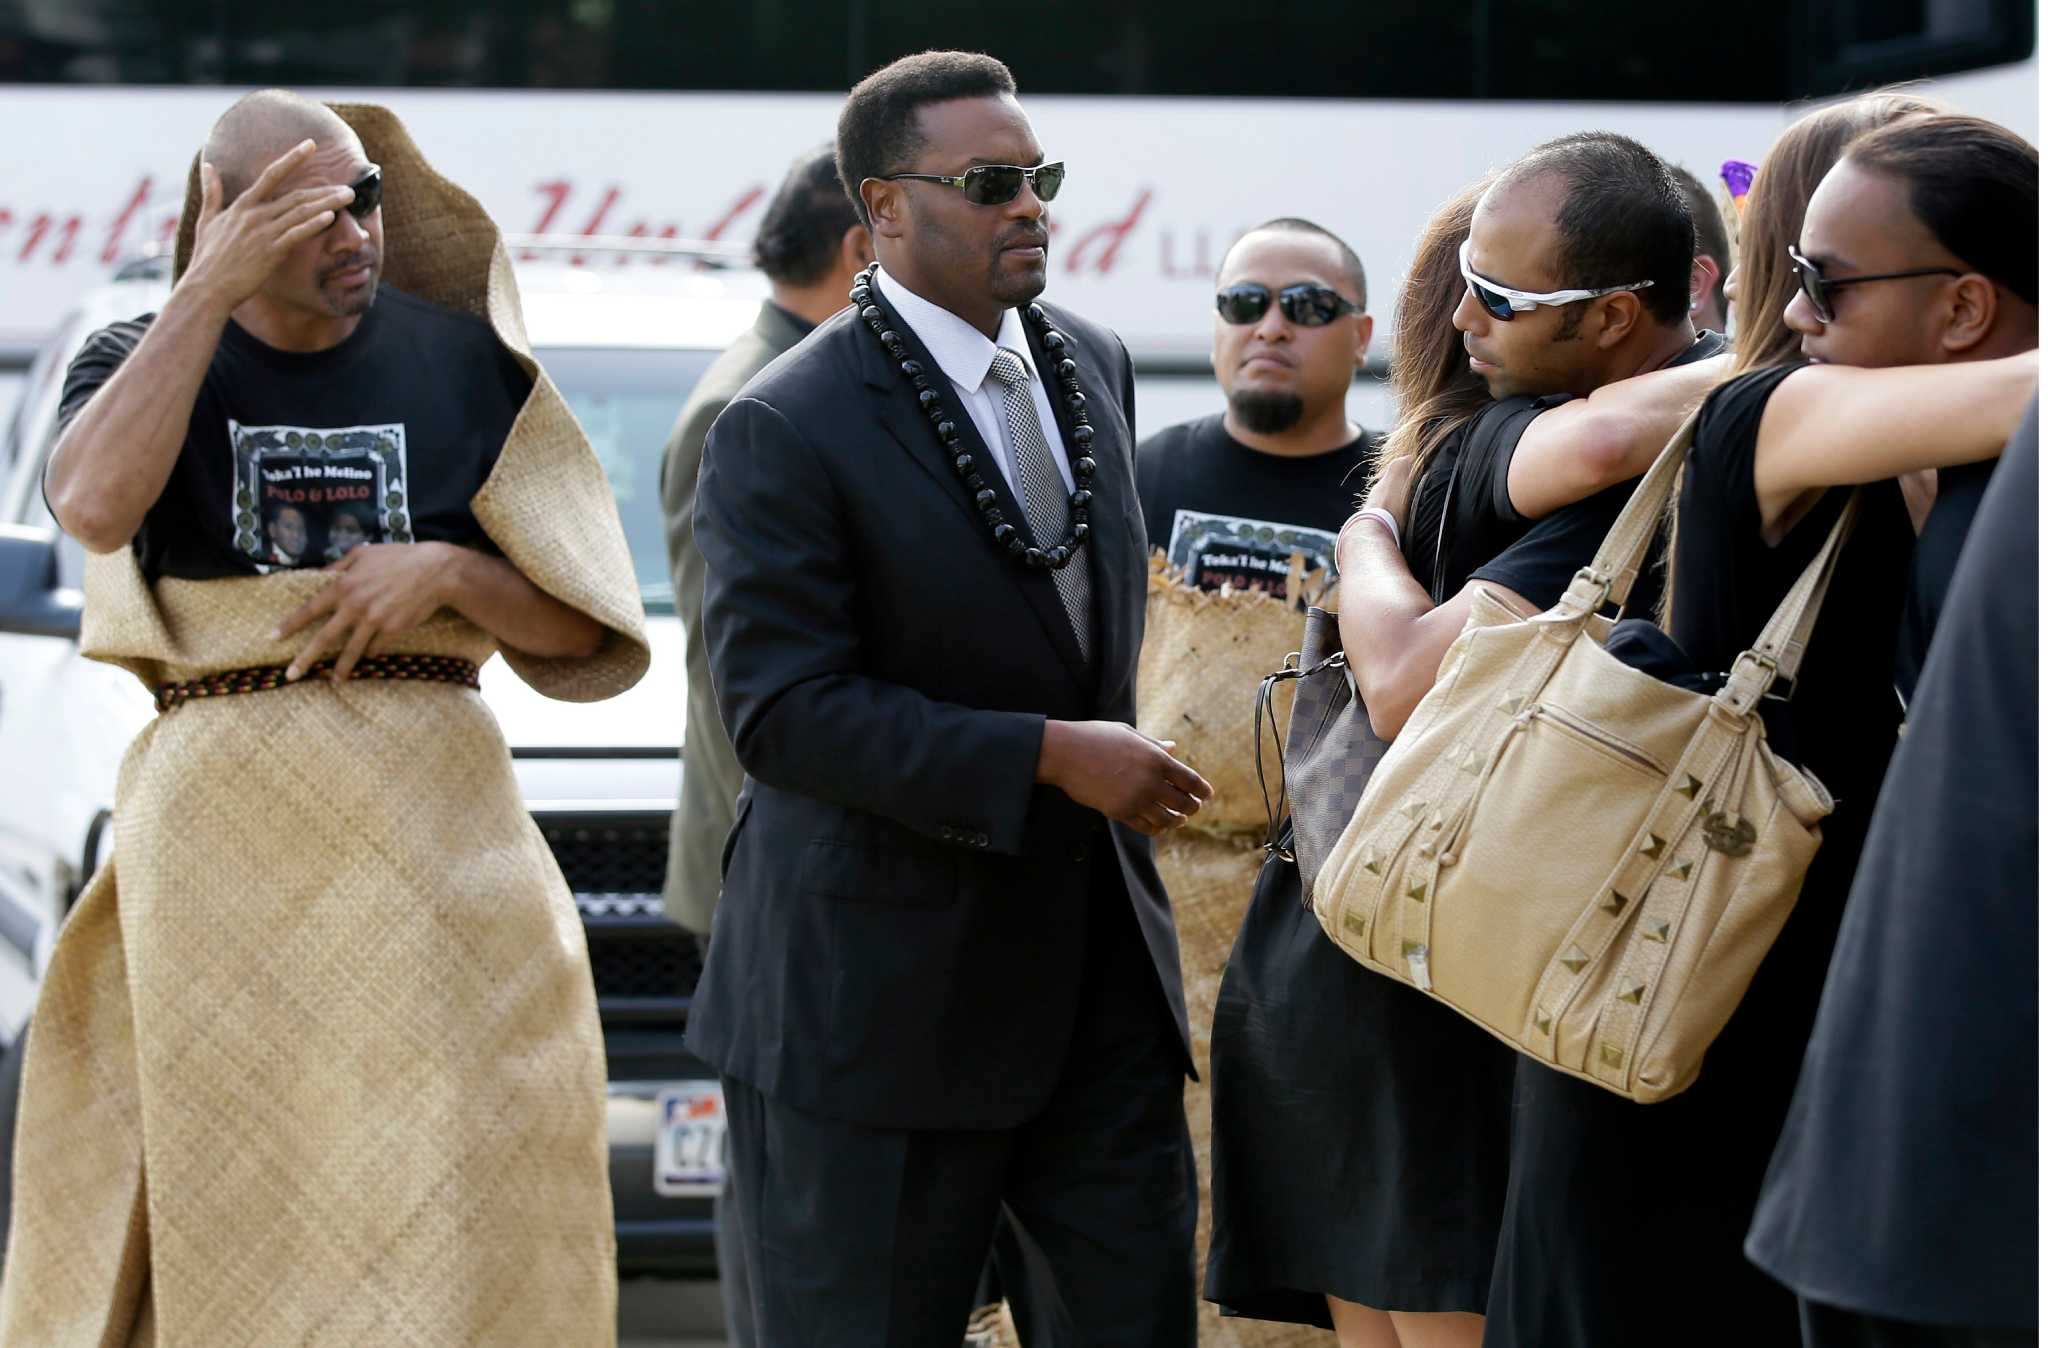 Aggies lineman remembered for humility at funeral - HoustonChronicle com